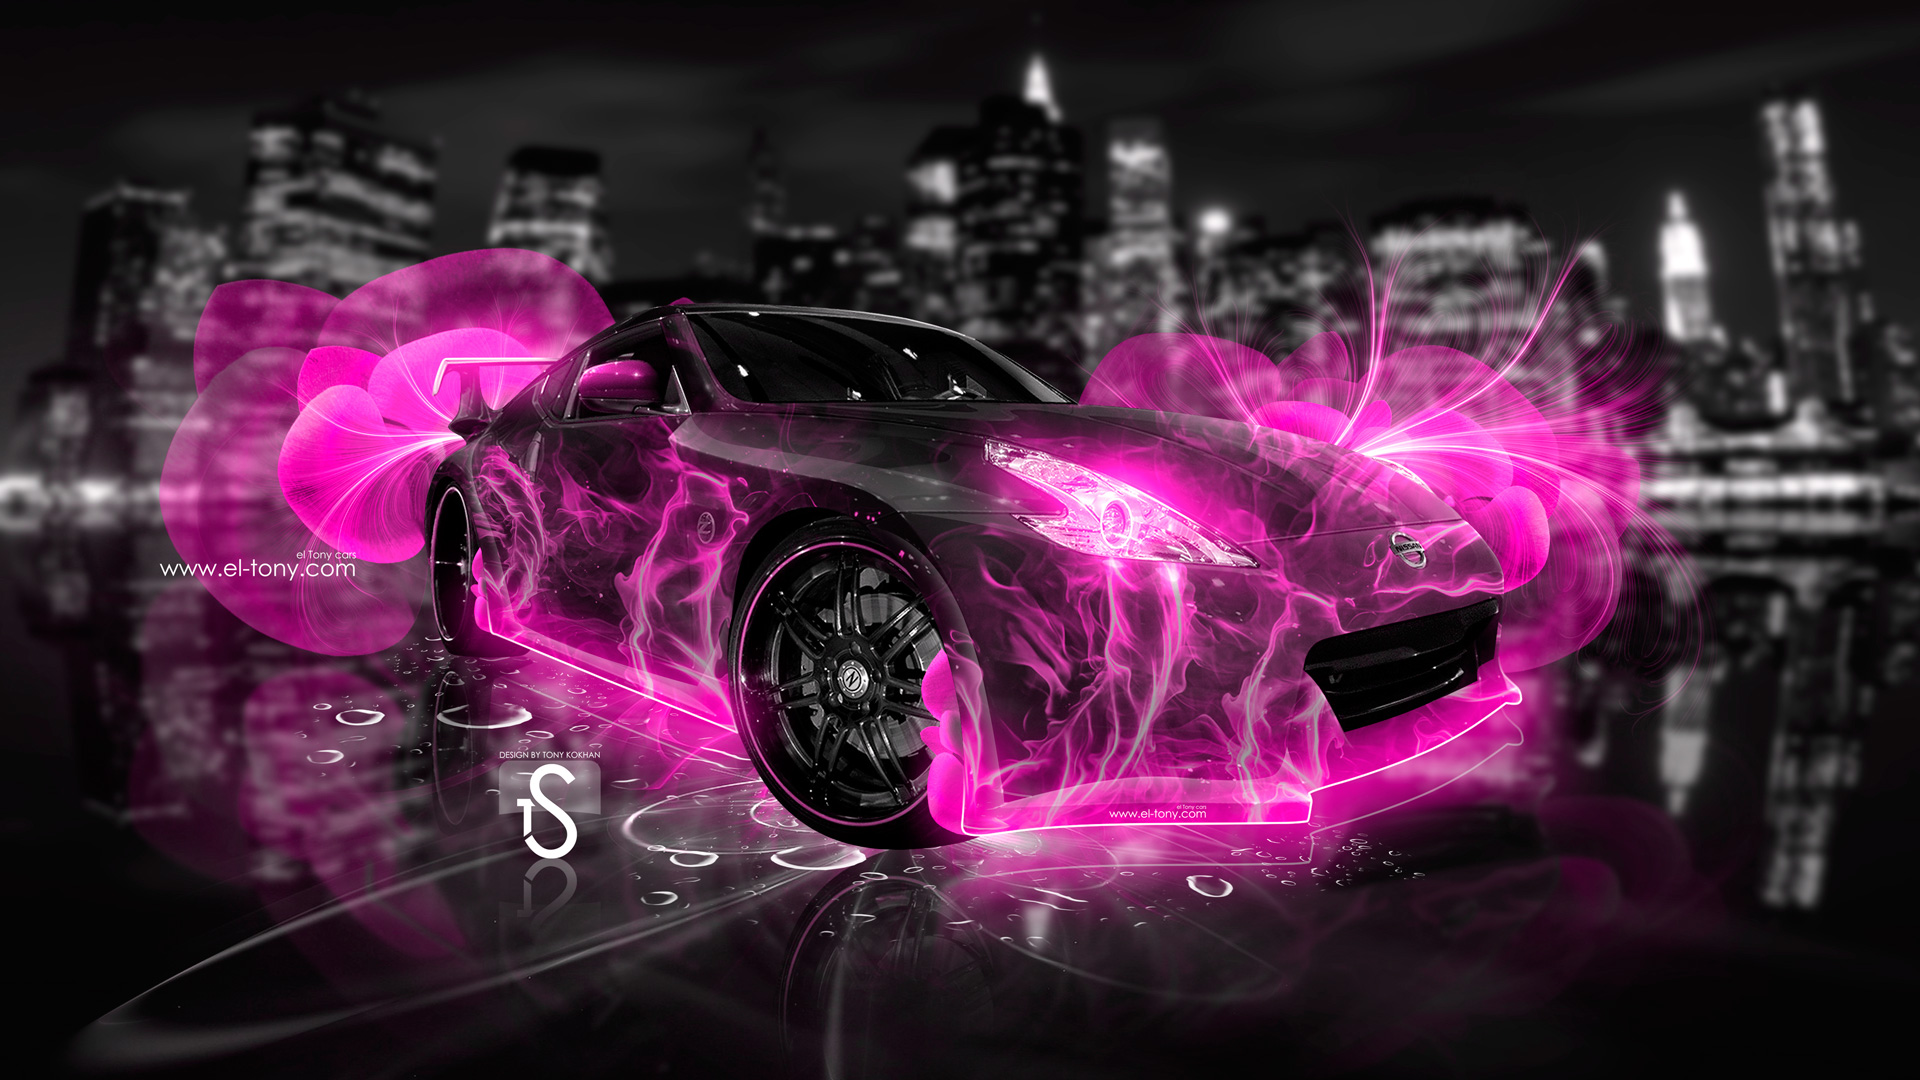 Charmant ... Nissan 370 Z Abstract Flowers Neon Pink 2013  ...